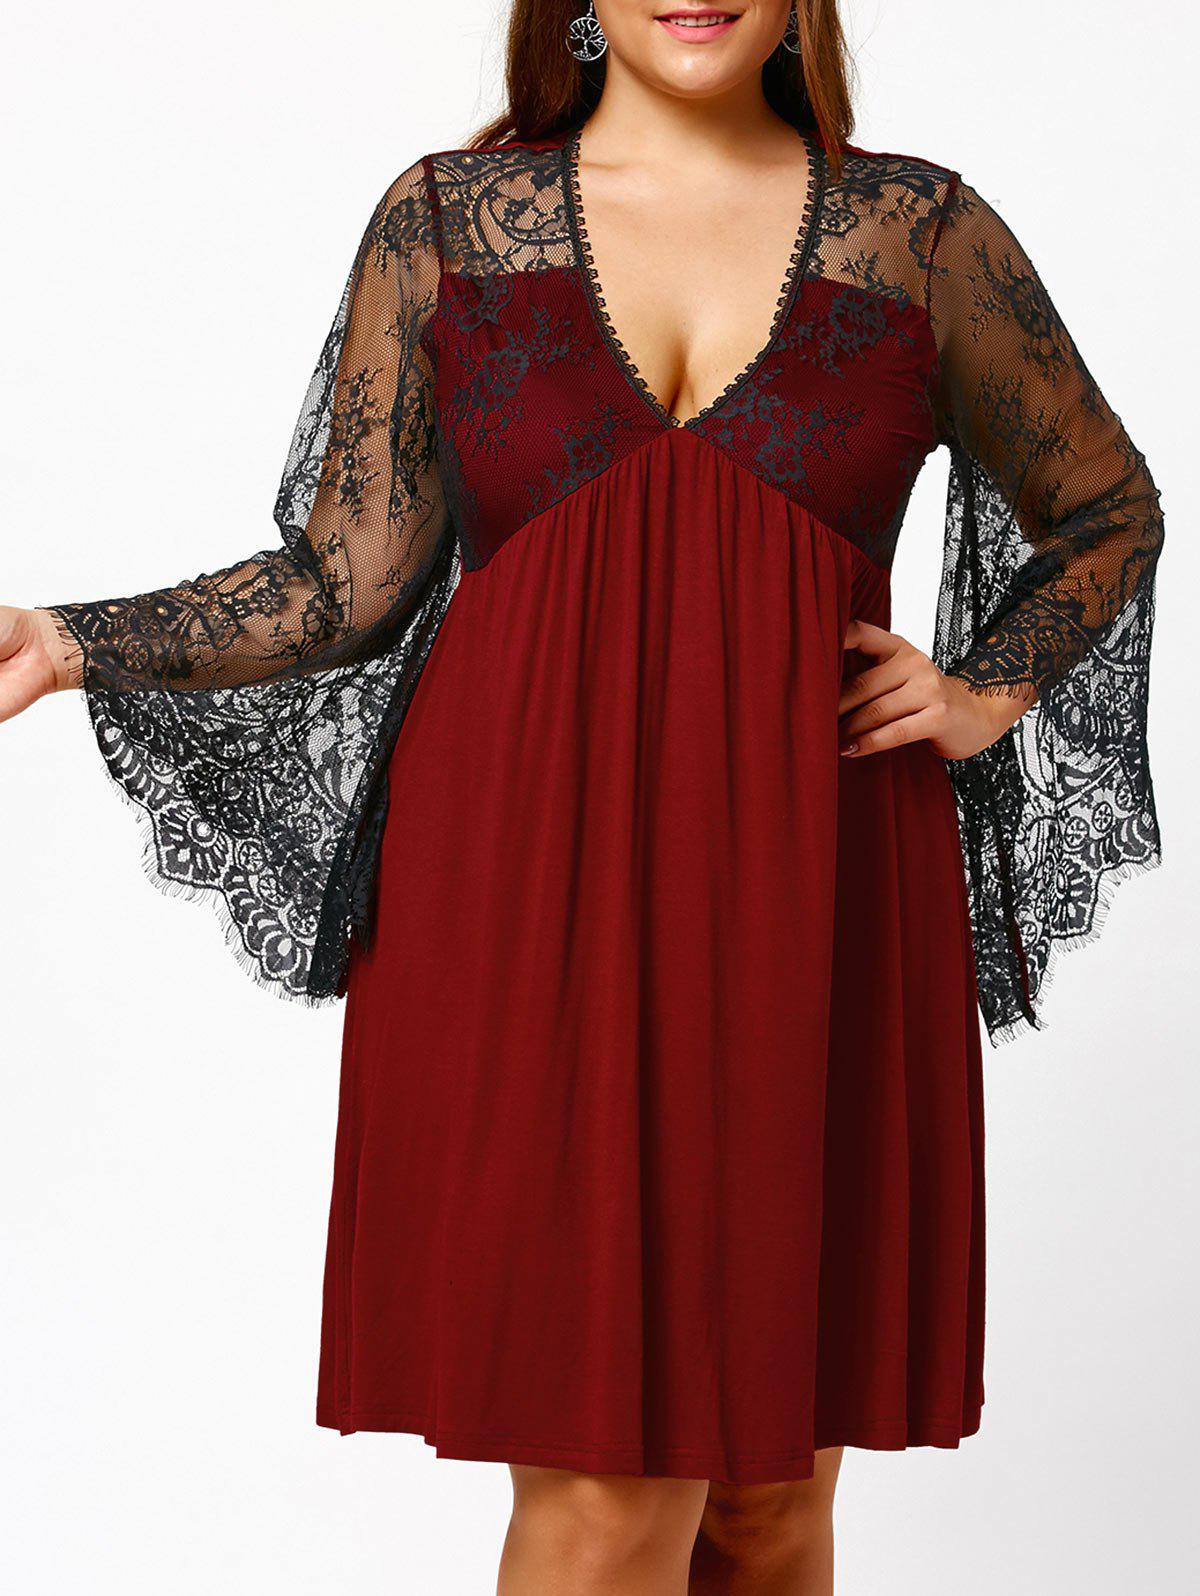 Plus Size Lace Sleeve Holiday DressWOMEN<br><br>Size: 3XL; Color: BURGUNDY; Style: Brief; Material: Polyester,Spandex; Silhouette: A-Line; Dresses Length: Knee-Length; Neckline: V-Neck; Sleeve Type: Flare Sleeve; Sleeve Length: Long Sleeves; Waist: Empire; Embellishment: Lace,Panel; Pattern Type: Solid Color; Elasticity: Elastic; With Belt: No; Season: Fall,Spring,Summer; Weight: 0.3500kg; Package Contents: 1 x Dress;